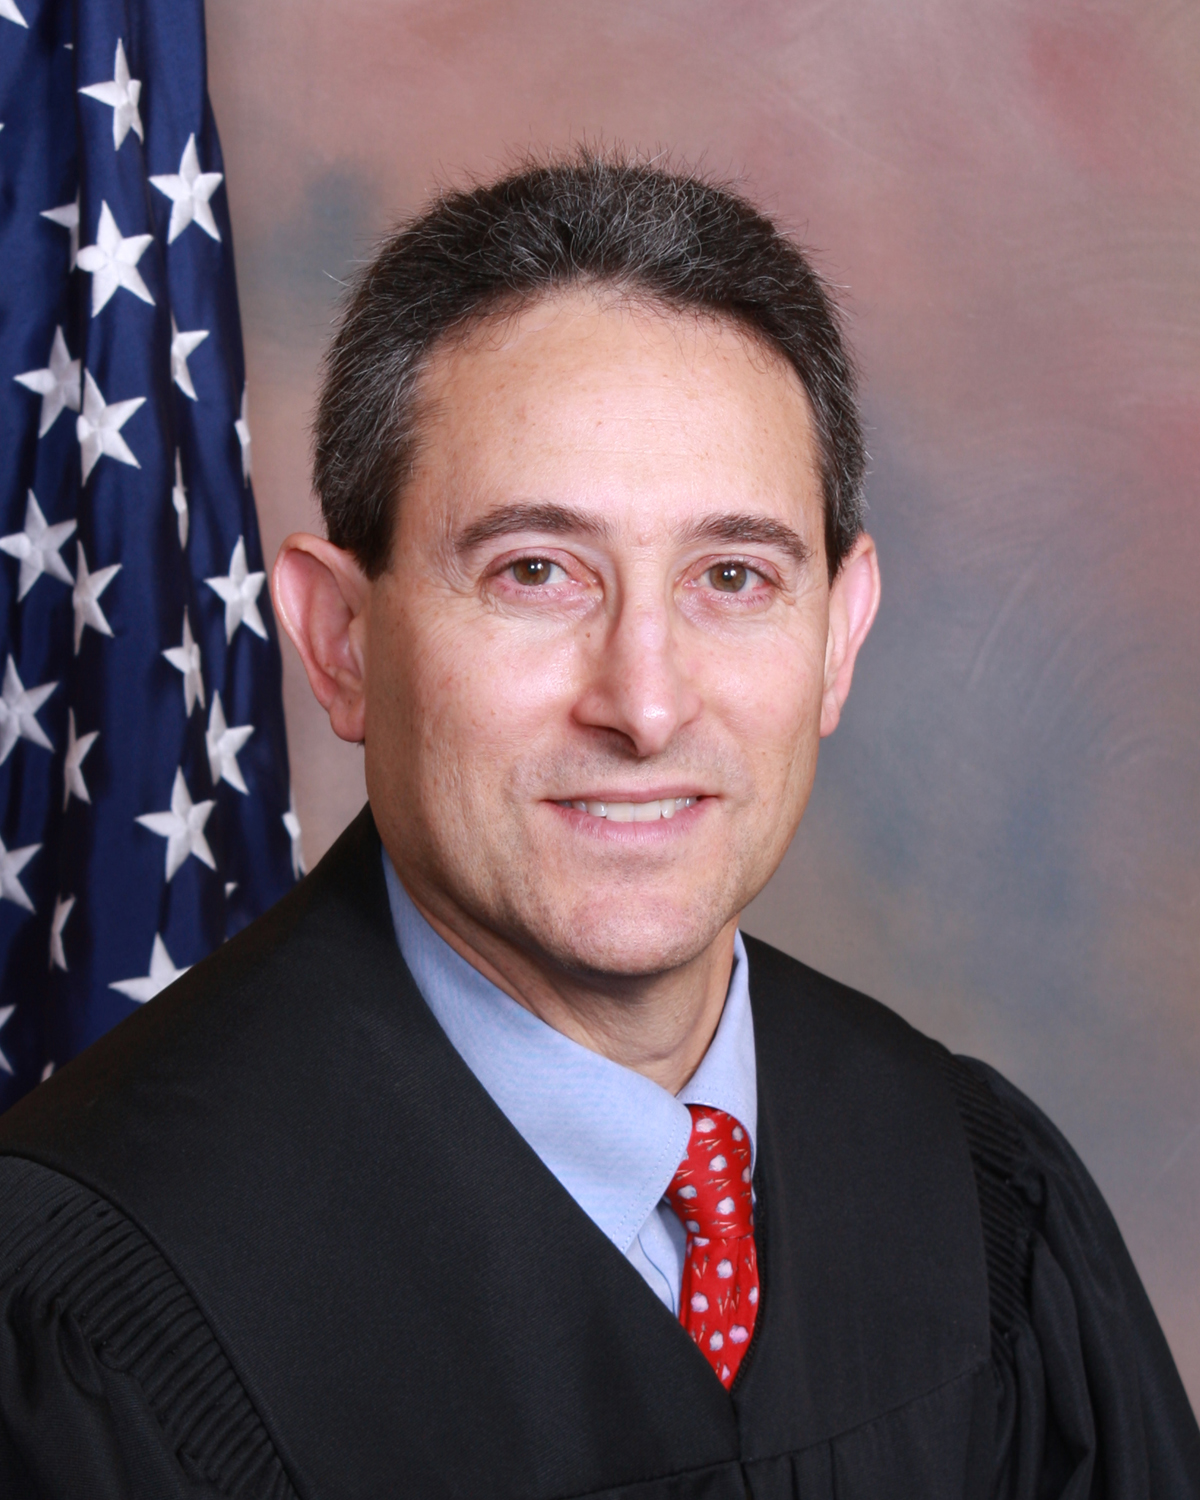 Brevard County Judge Kenneth Friedland. Opens in new window.